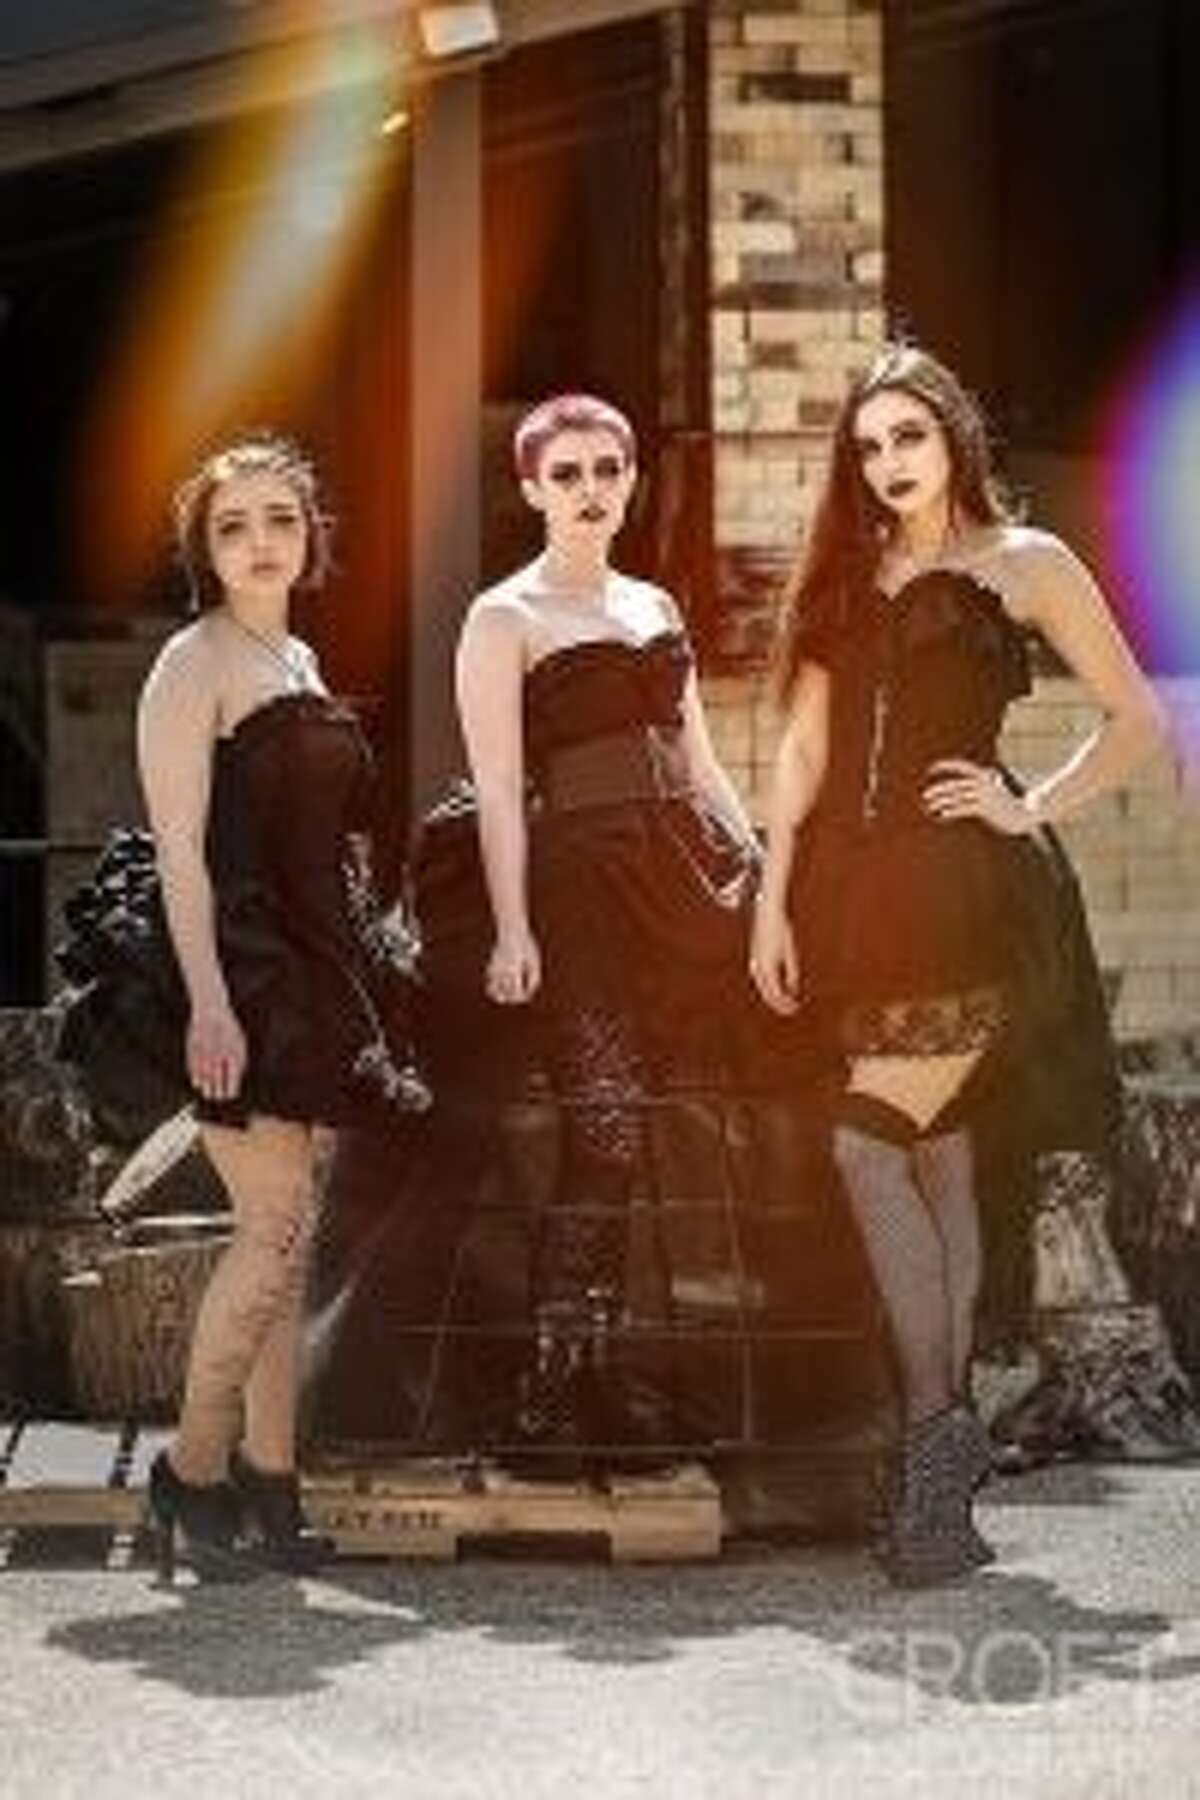 A total of three of Larson's collections will be displayed during the show, including one entitled Darkness Encompassing, which she describes as having a dark gothic theme. Modeling this collection are Cassandra Scouten, Victoria Vitale and Natasha Raquepaw.